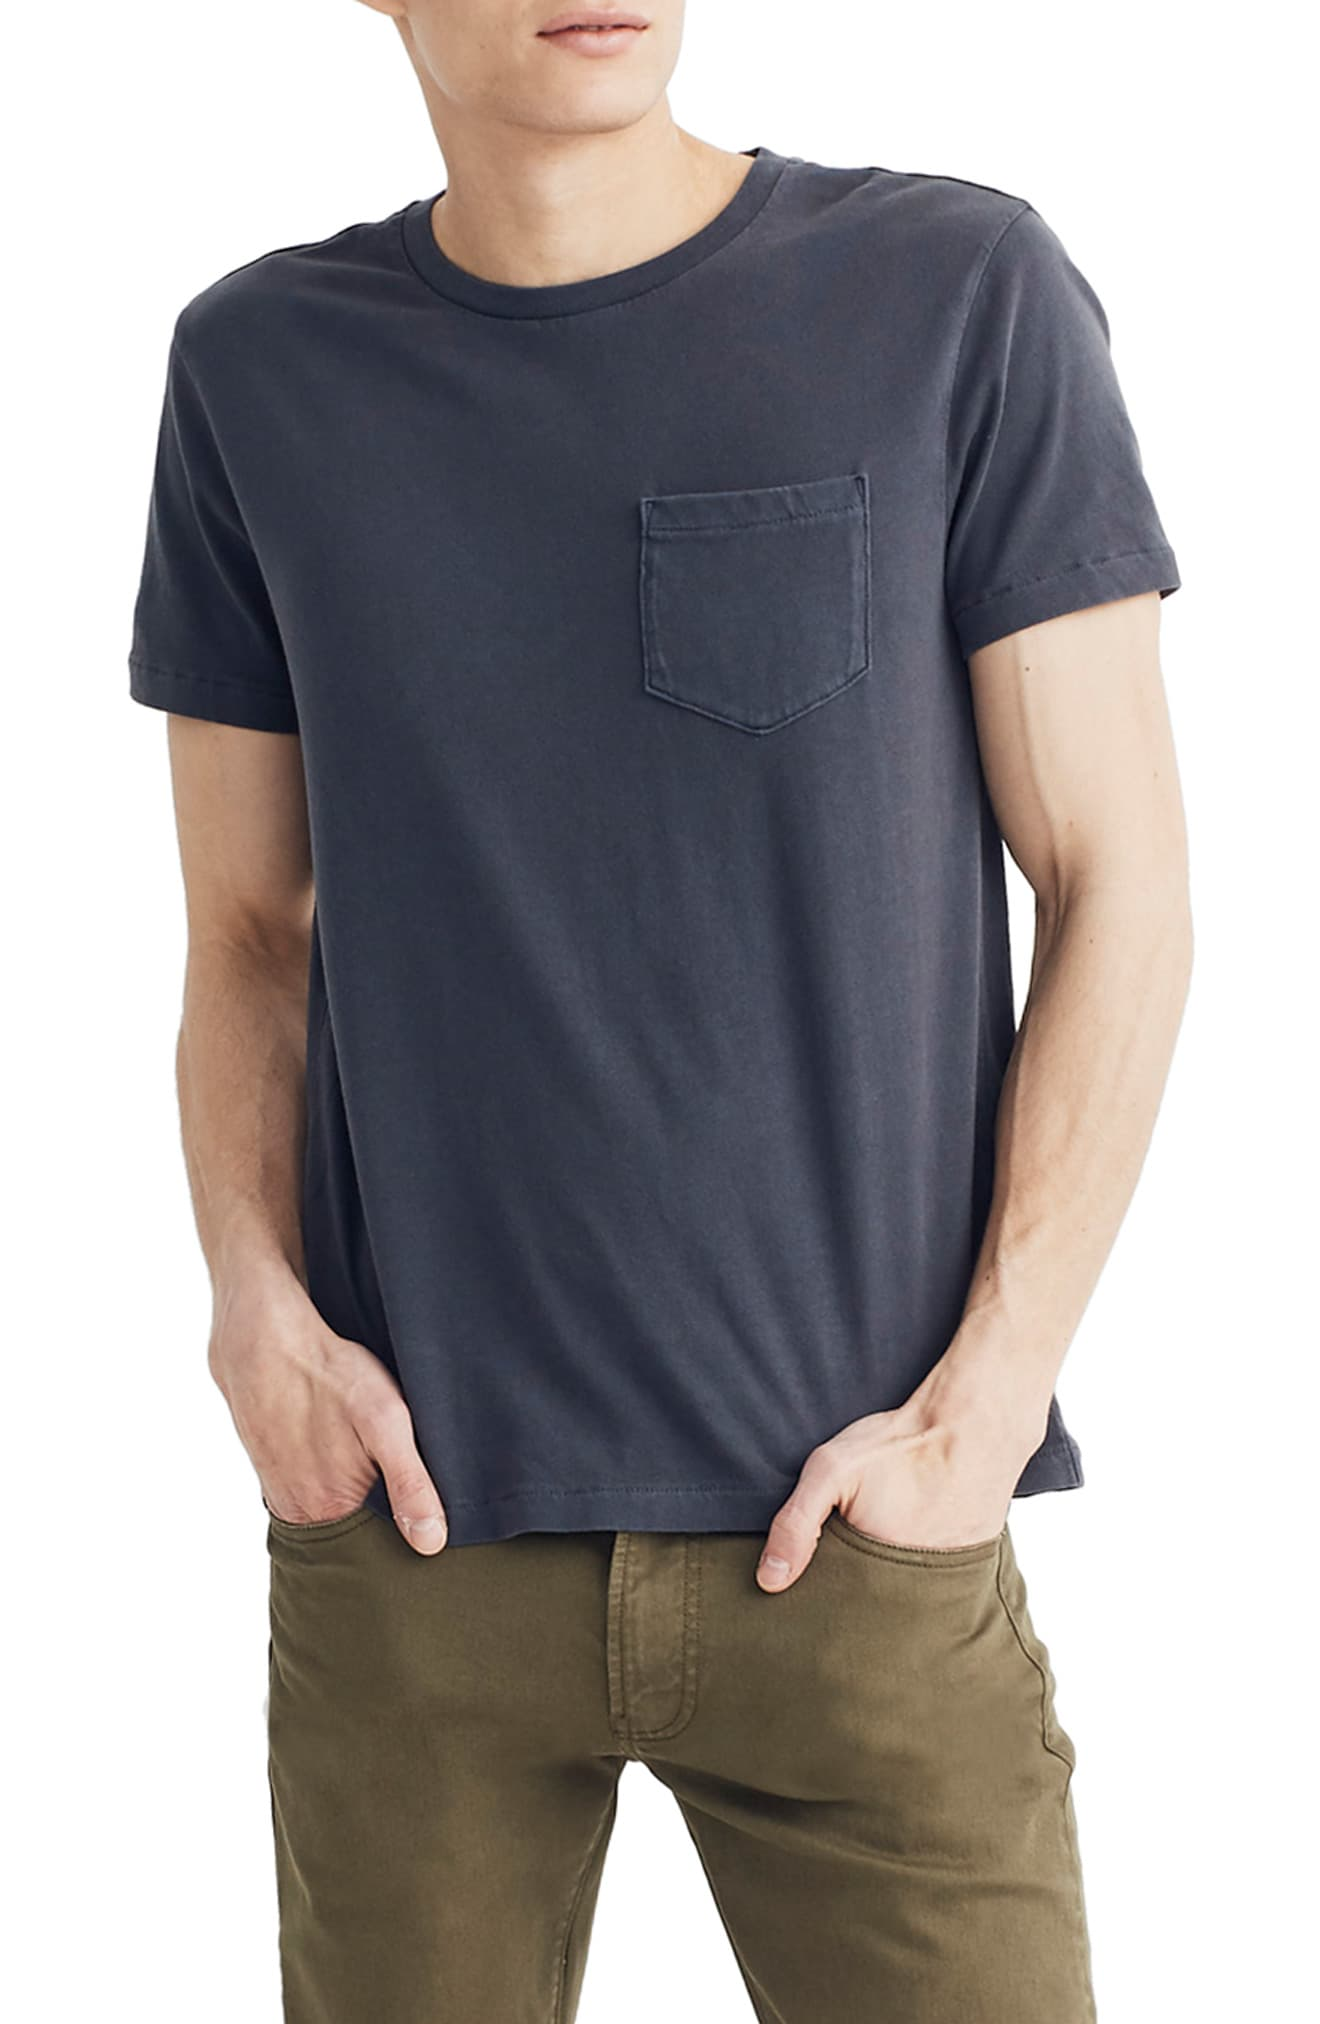 Men's Madewell Allday Slim Fit Garment Dyed Pocket T-Shirt, Size Small - Black